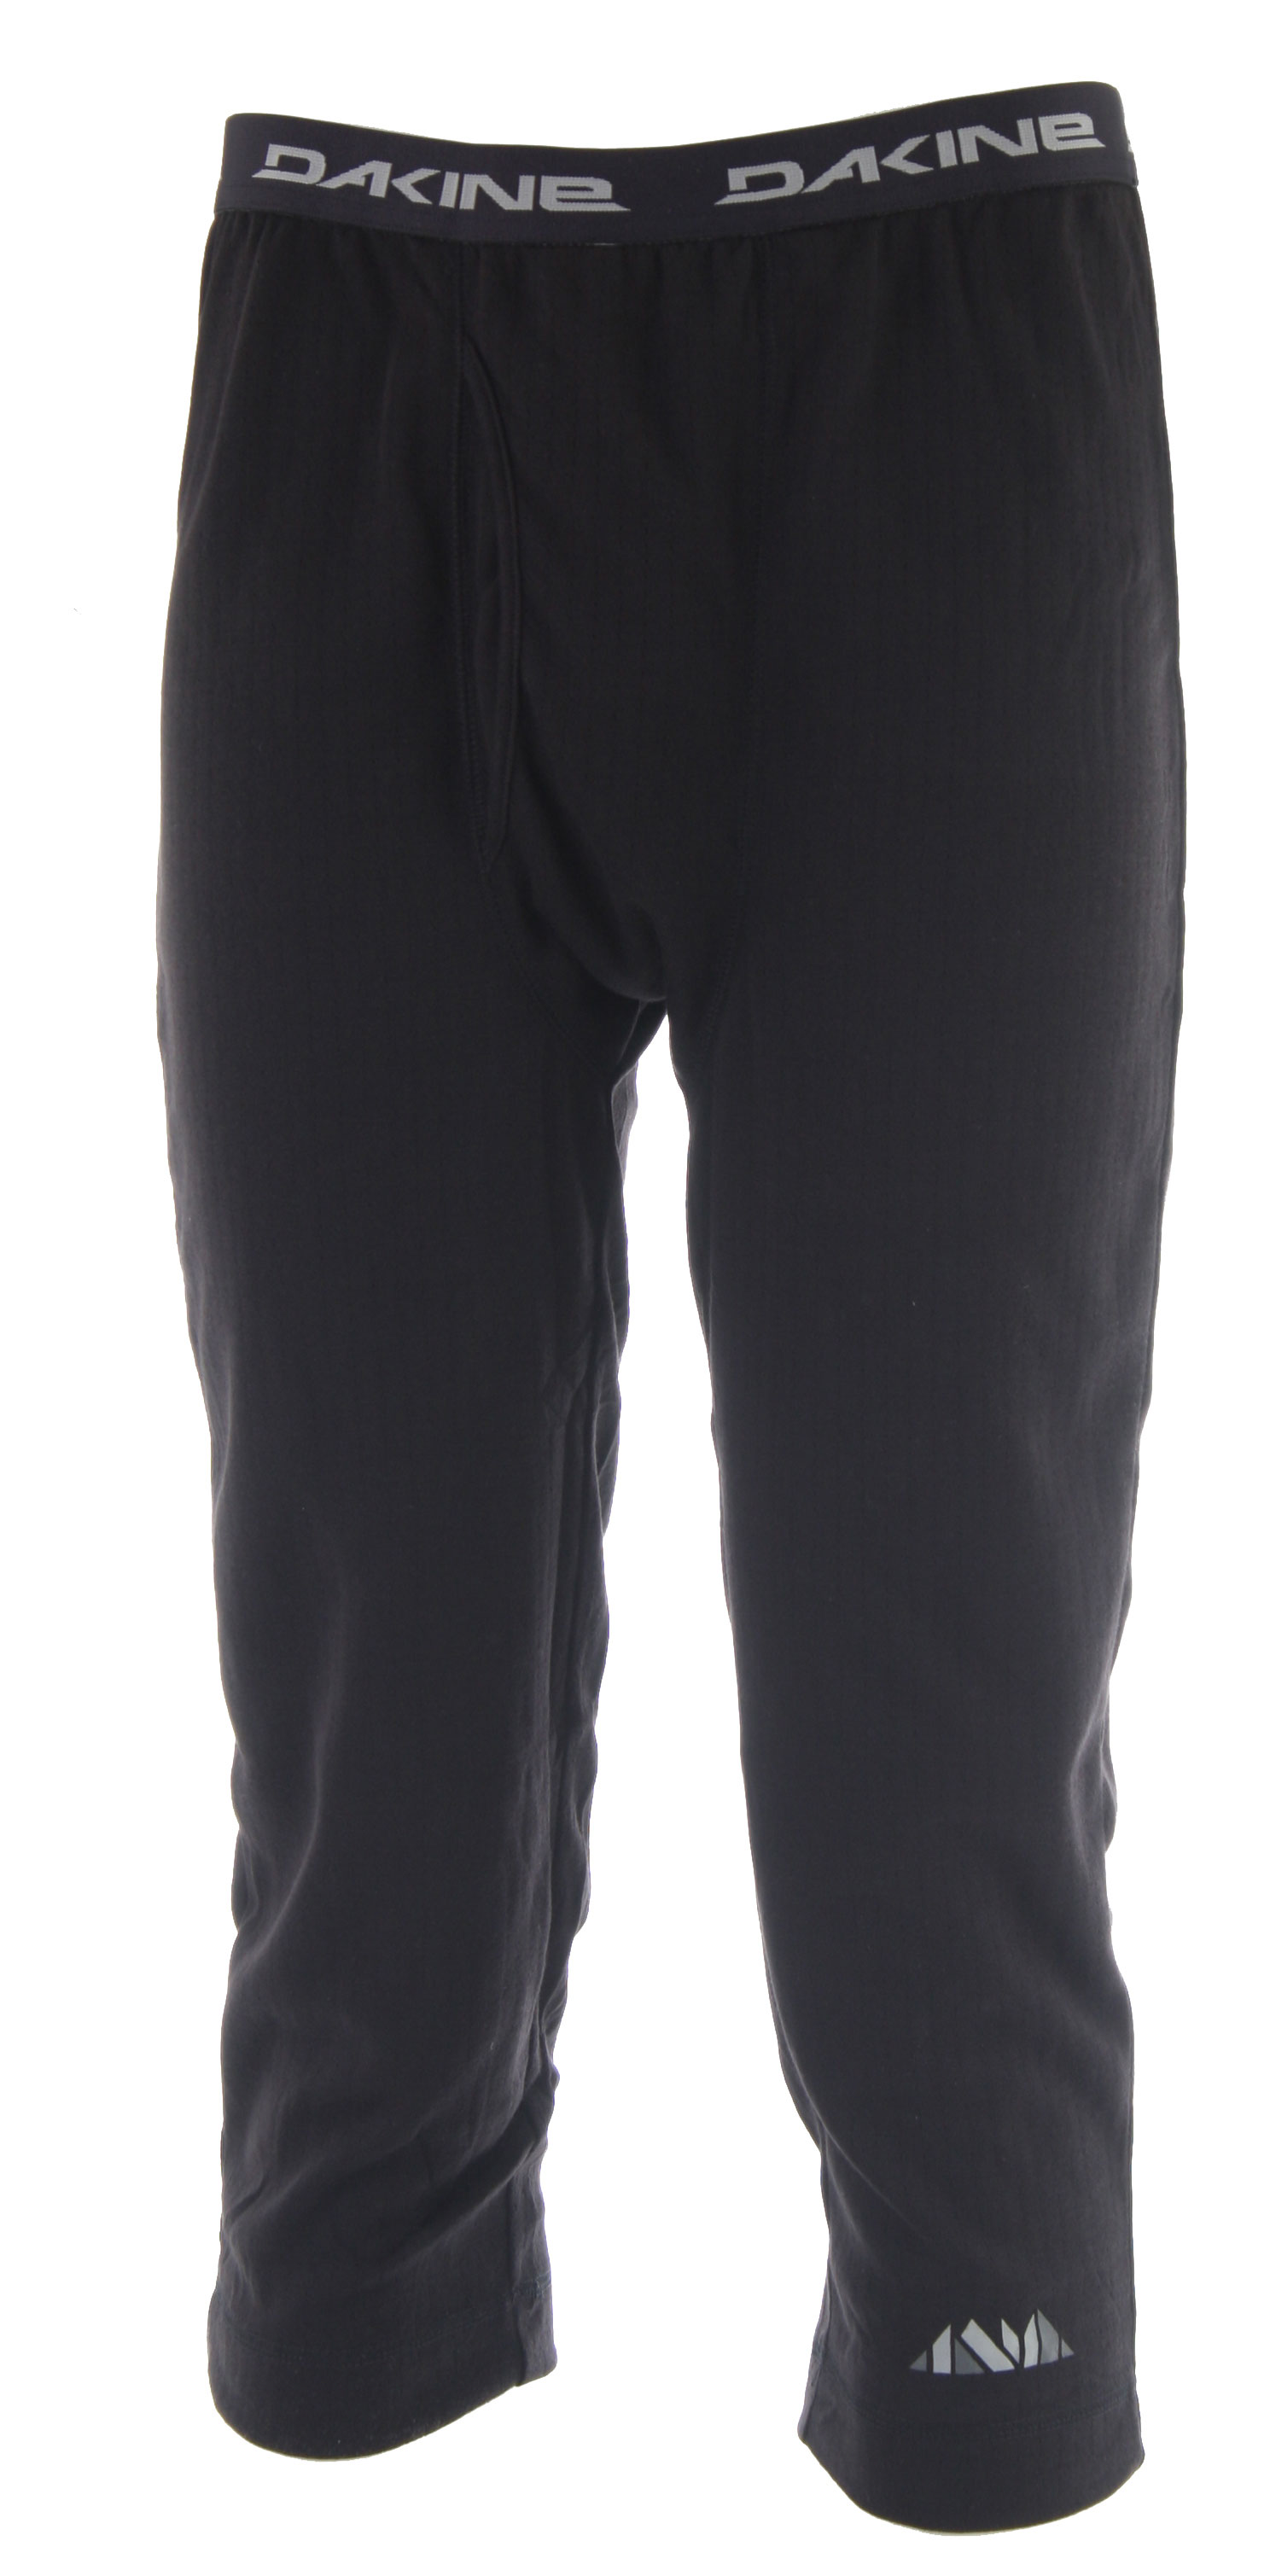 Surf Key Features of the Dakine Foundation 3/4 First Layer Pants: 100% Polyester double-knit Two layers for warmth and dryness with no bulk AEGIS microbe shield antibacterial fabric treatment - $19.57